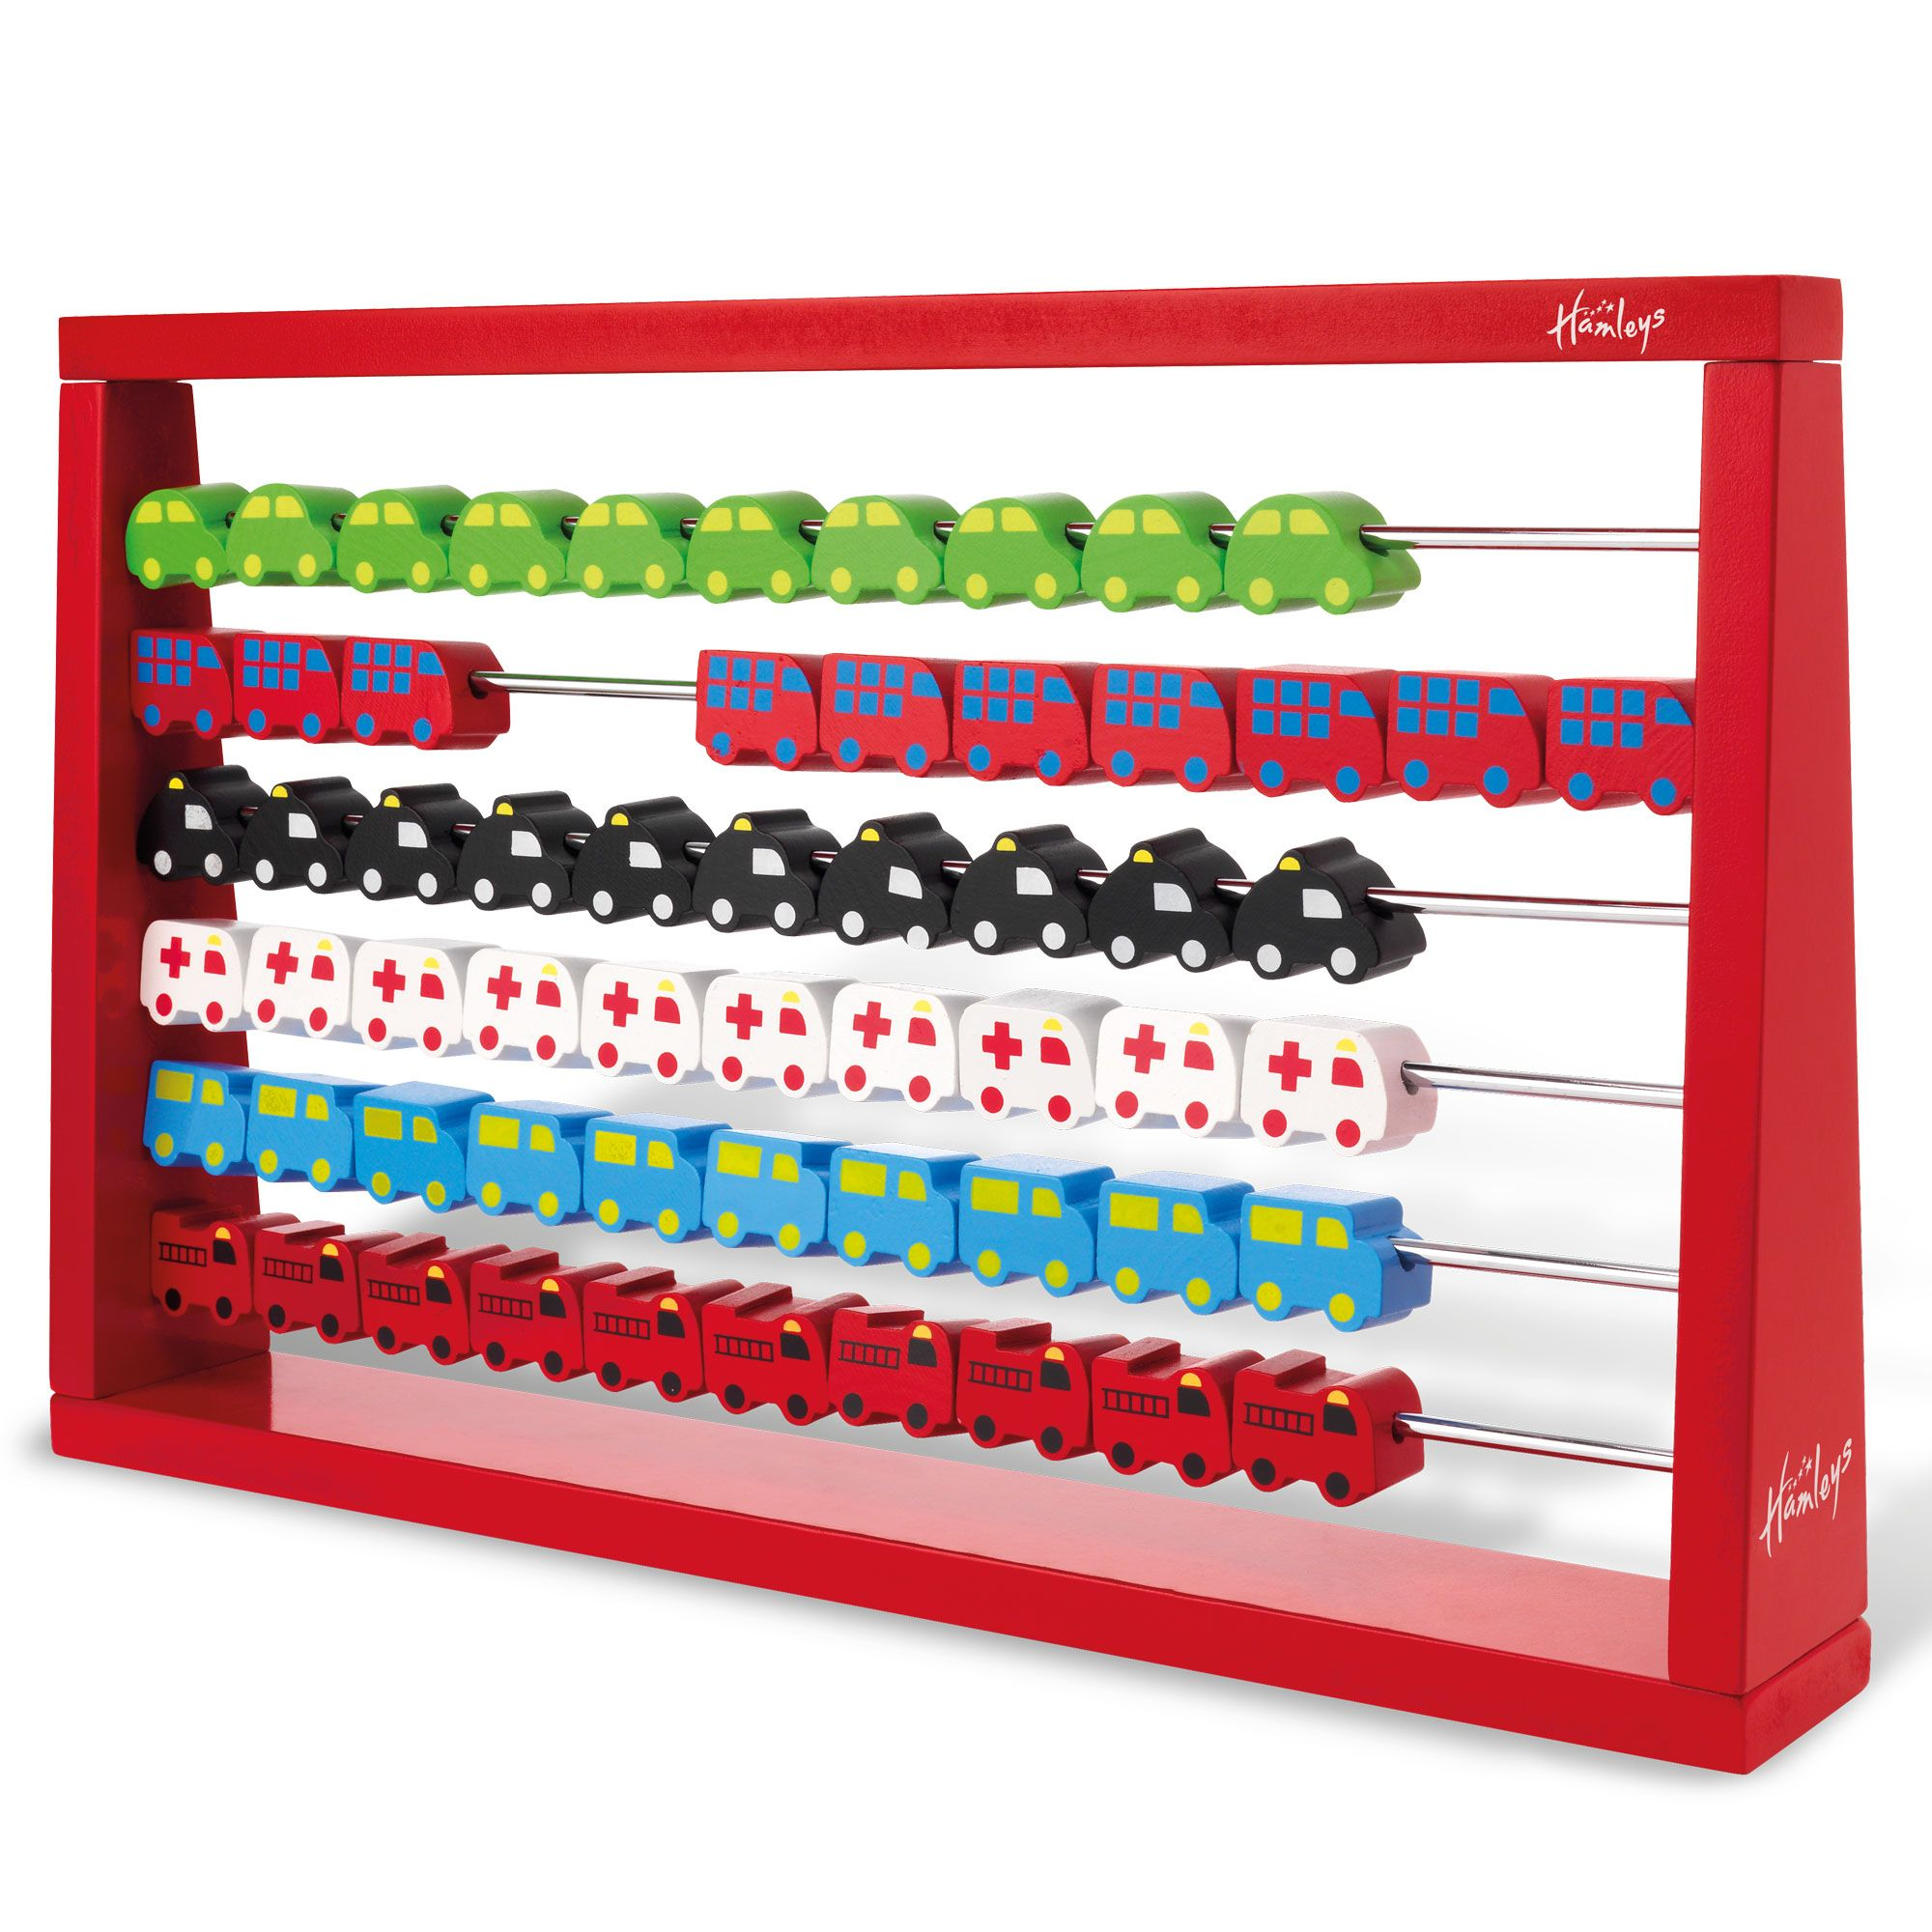 Hamleys my bead counter